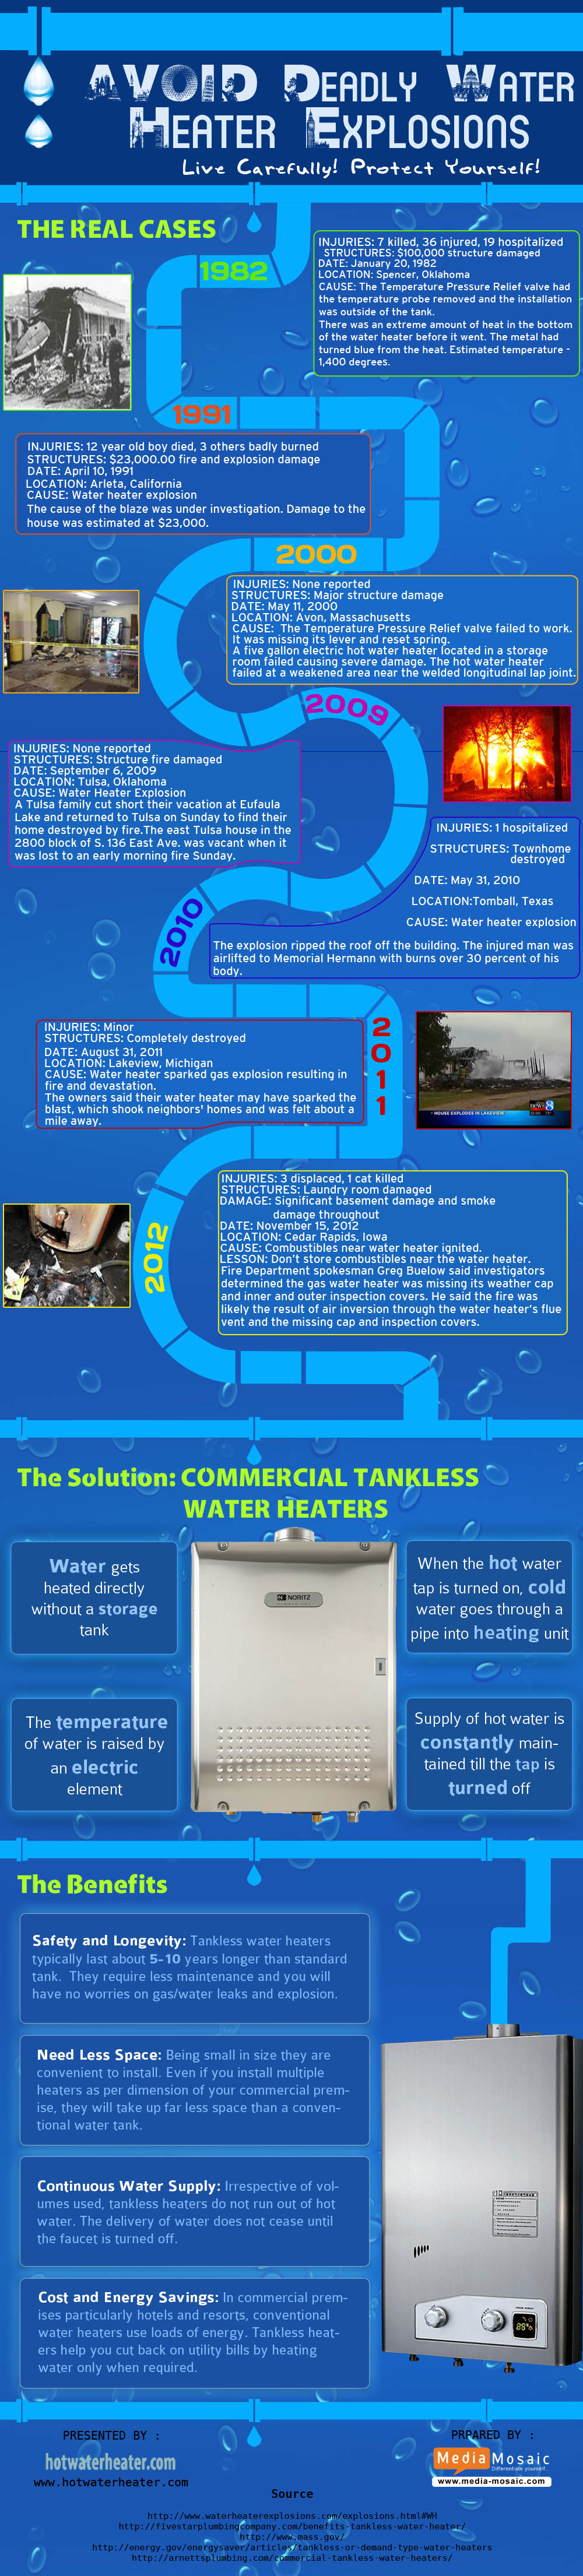 Avoid Deadly Water Heater Explosions